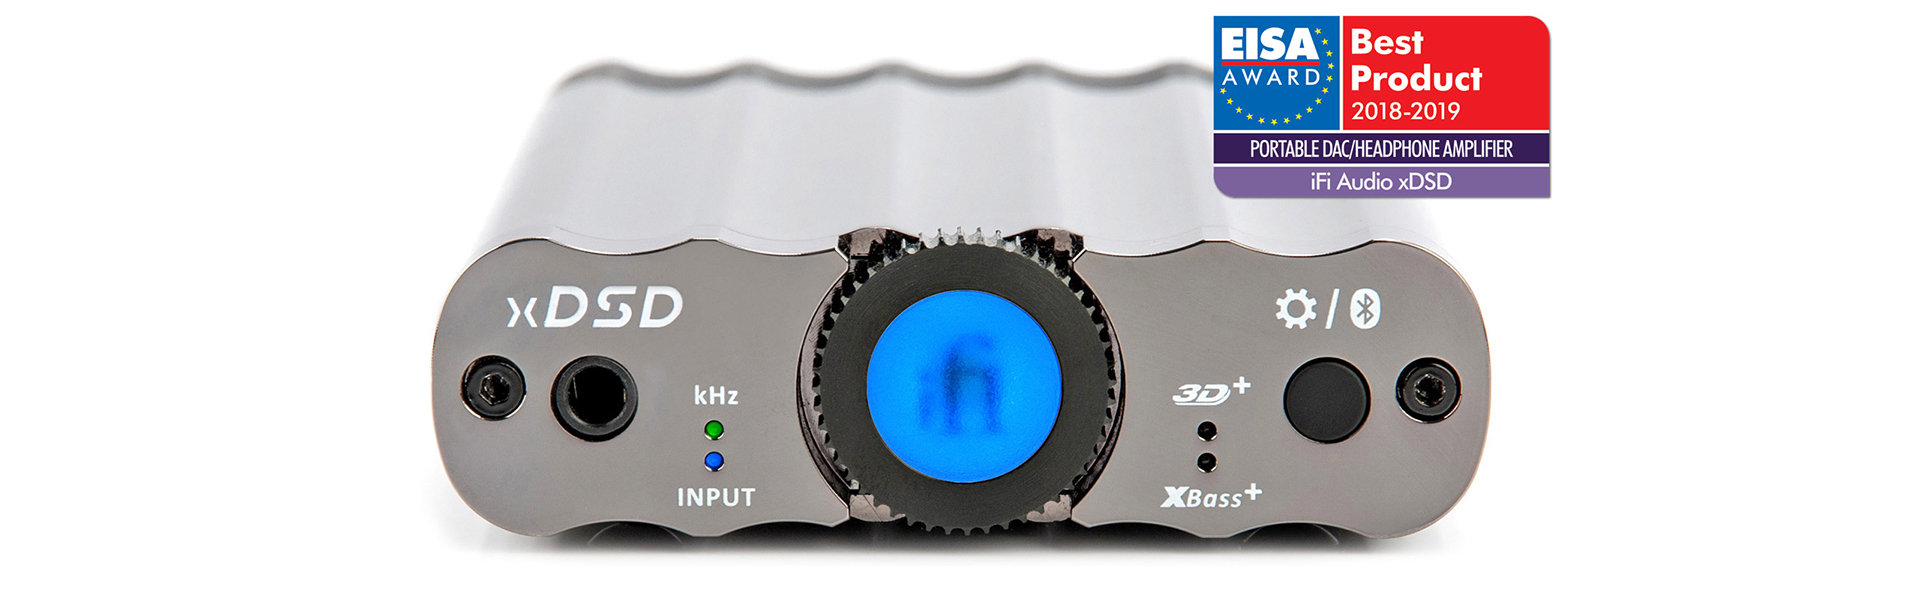 iFi Audio xDSD EISA Award